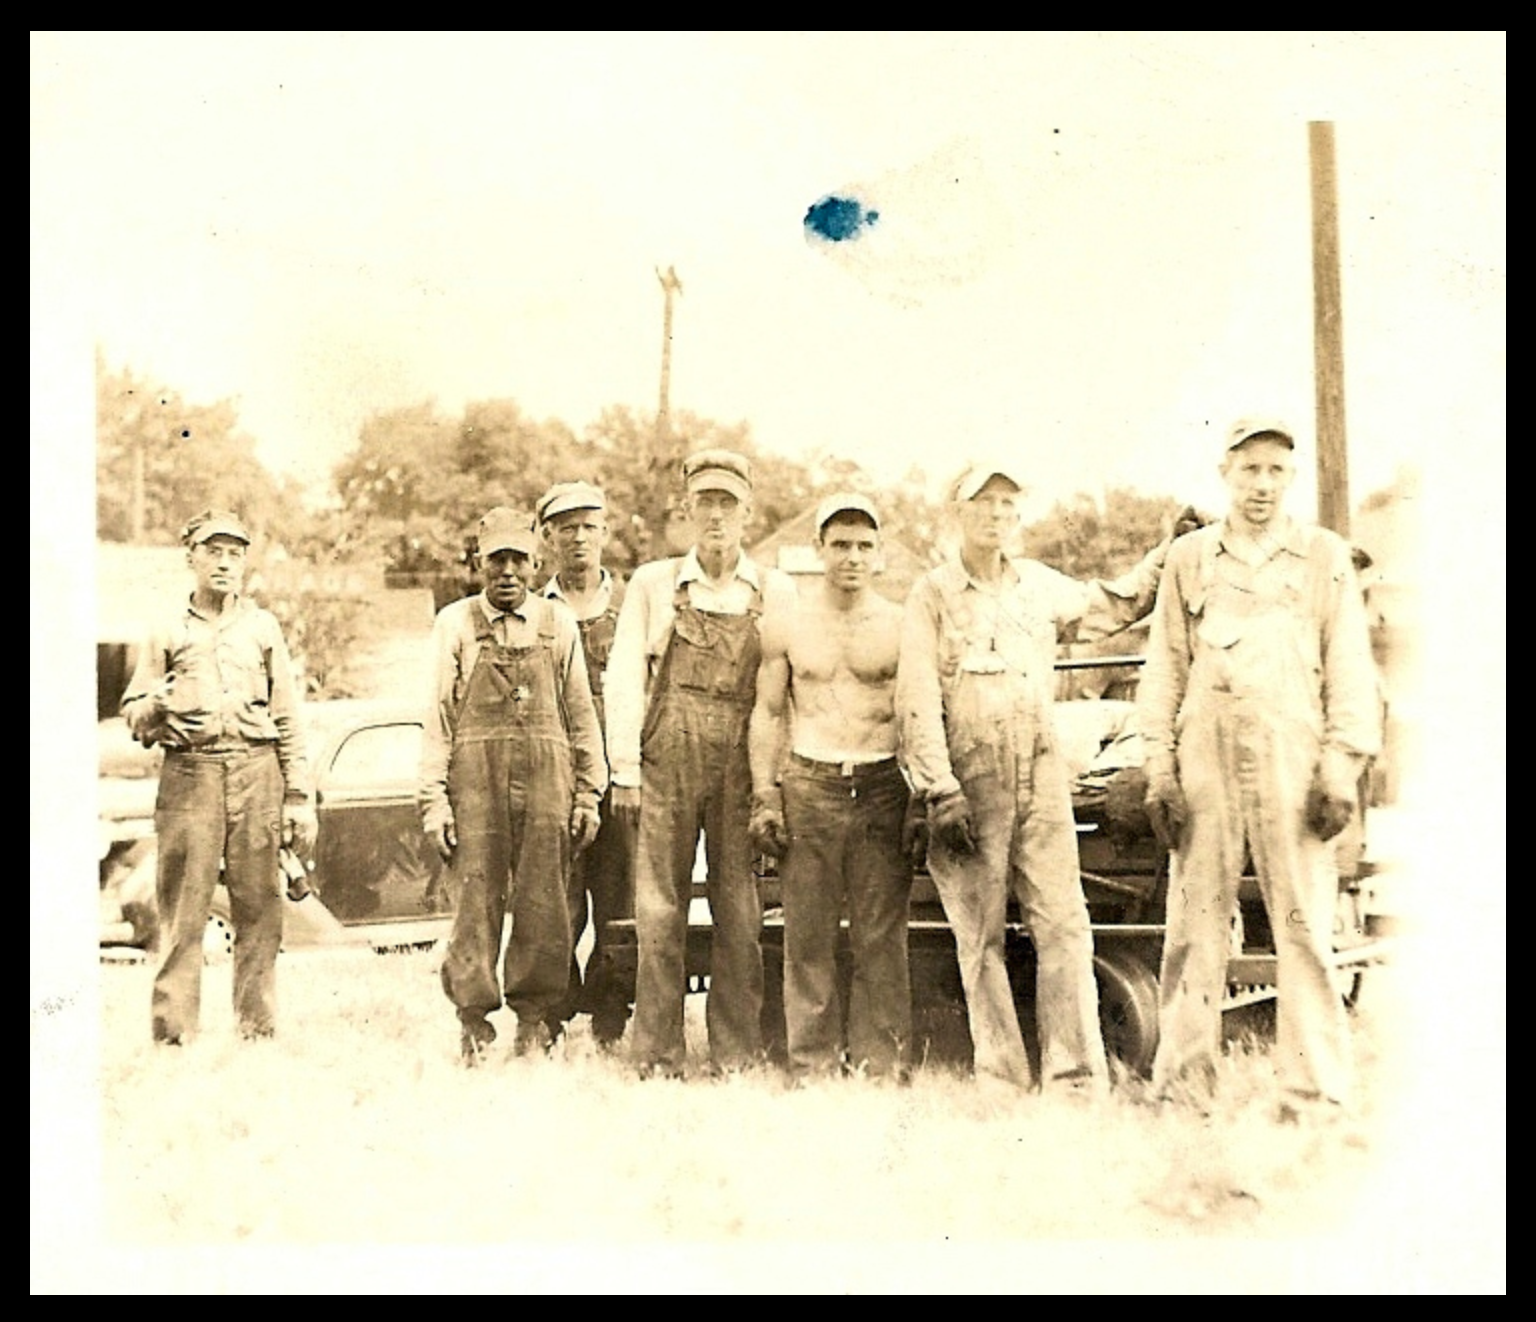 """My paternal grandfather Virgil Taylor Dennison with his """"Fan Club"""" - some of his extended family, friends, associates, and neighbors, circa 1946, Williamsville, IL, after a day's work on the Chicago & Alton Railroad section crew.  Left to right: Joe Parsons, brother-in-law; George Bensonhefer, neighbor & friend; Clyde Dennison, cousin; Grandpa; James Shinnebarger, nephew by marriage; Lewis Wheatley & Eldon Dambacher, sons-in-law."""